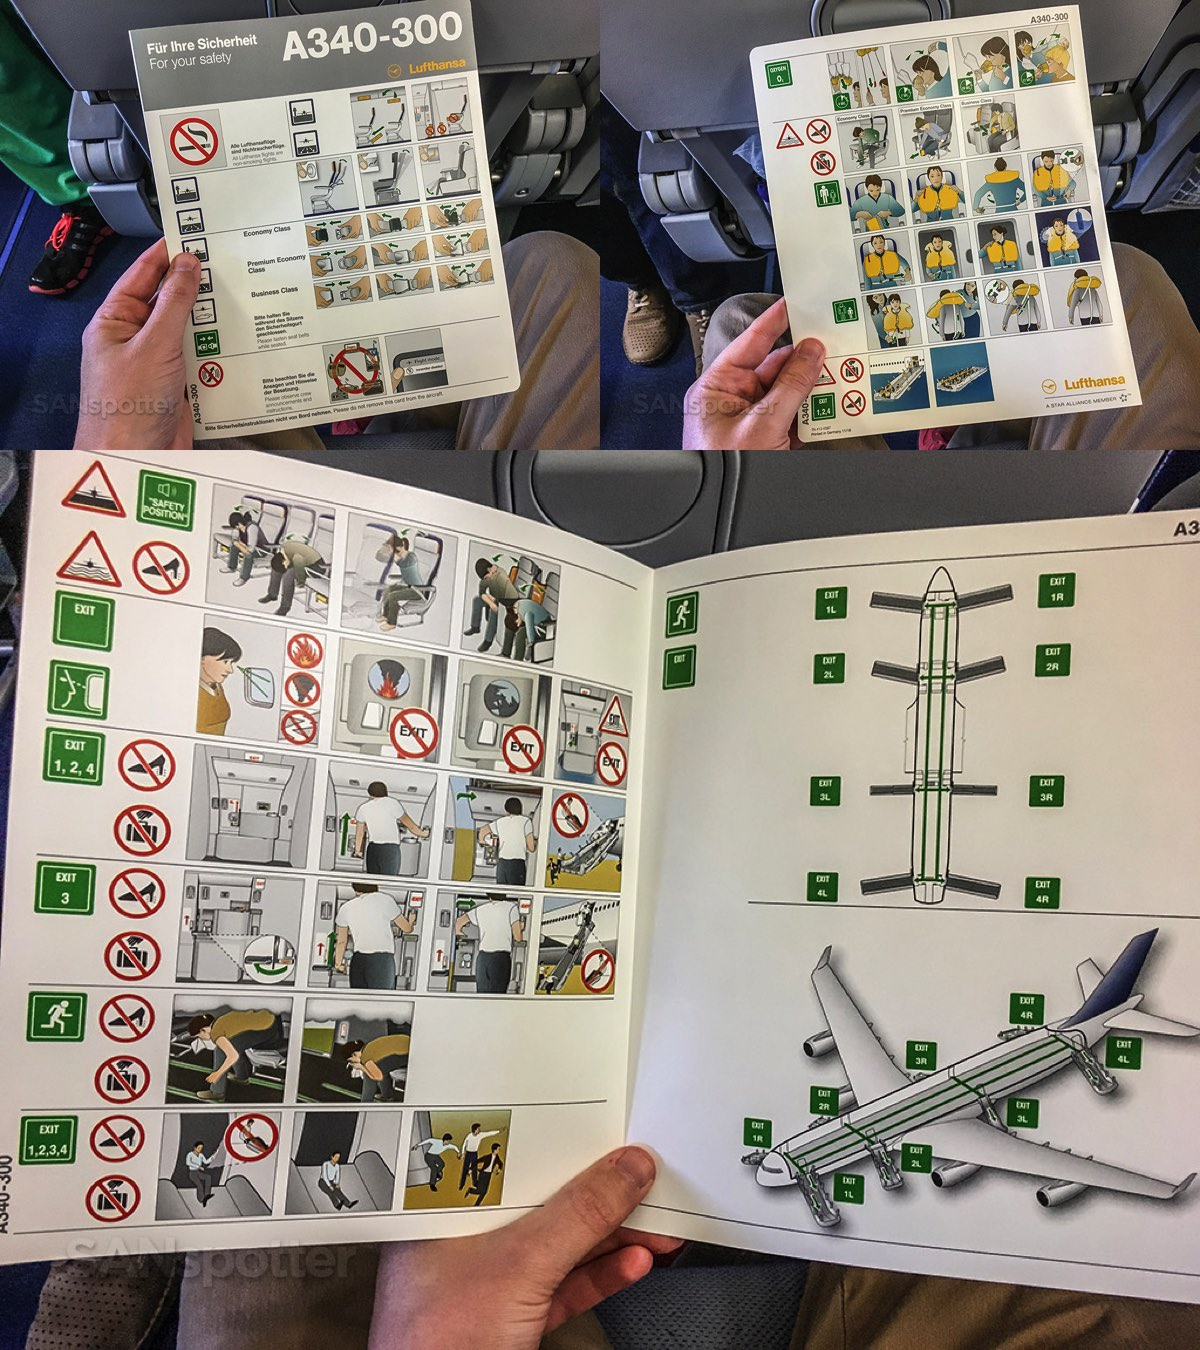 Lufthansa a340-300 safety card